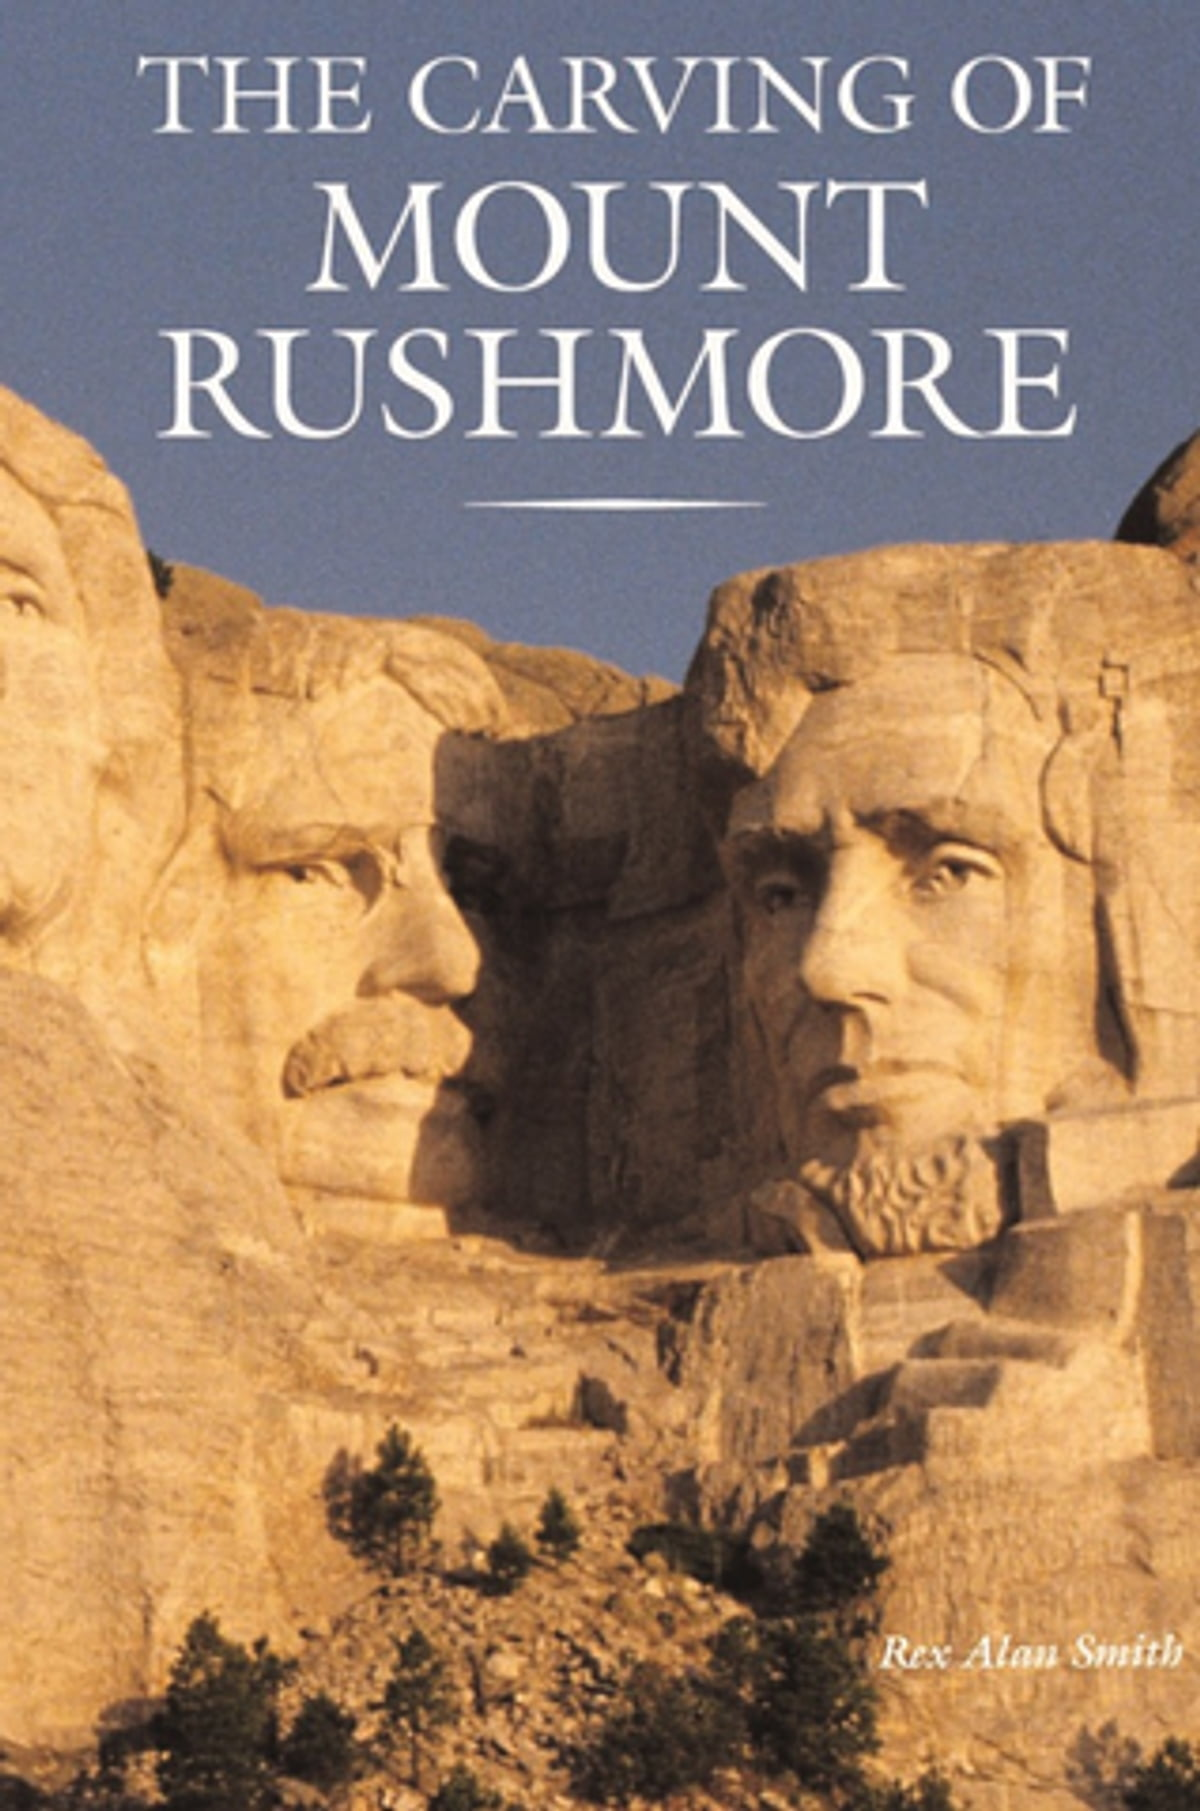 The carving of mount rushmore ebook by rex alan smith the carving of mount rushmore ebook by rex alan smith 9780789260086 rakuten kobo fandeluxe Epub